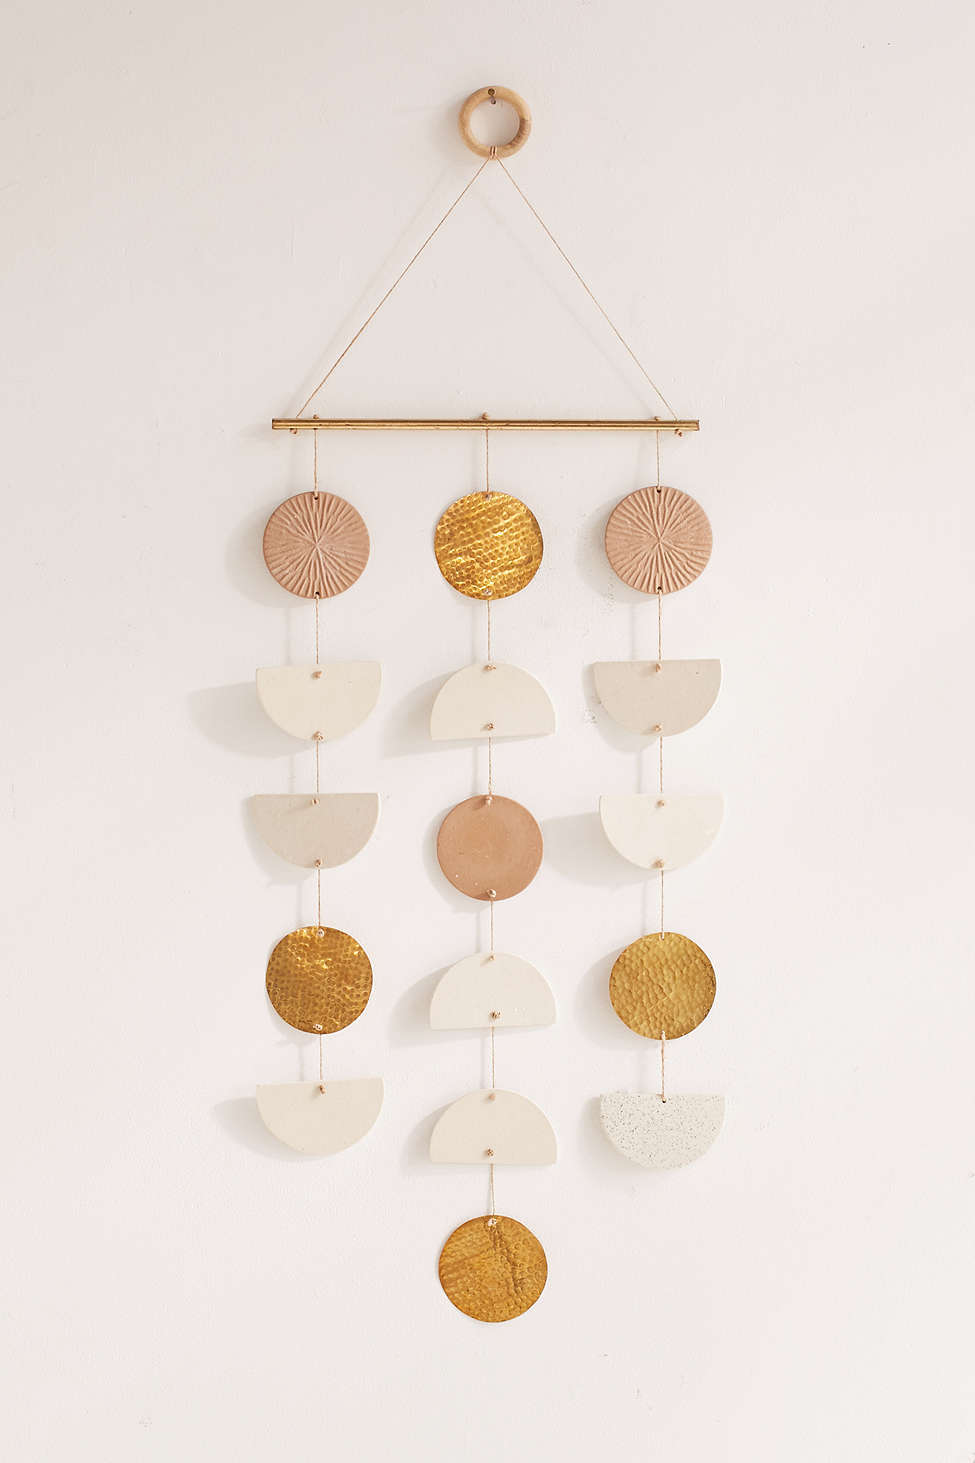 【Urban Outfitters】ウォールハンガー Zoe Wall Hanging